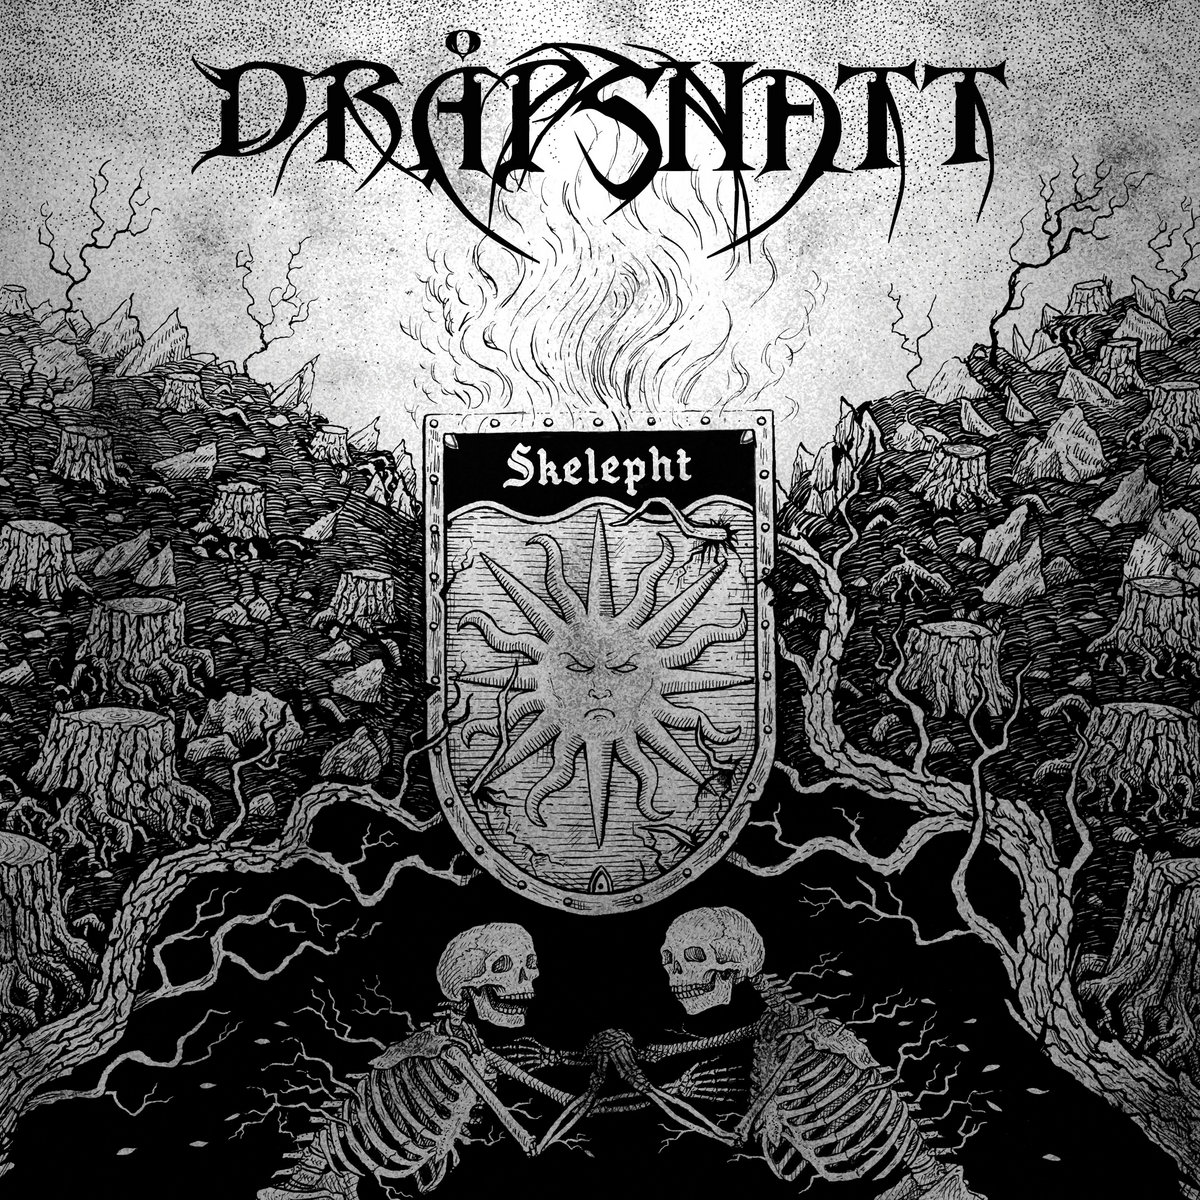 Skelepht Dråpsnatt Cover Art